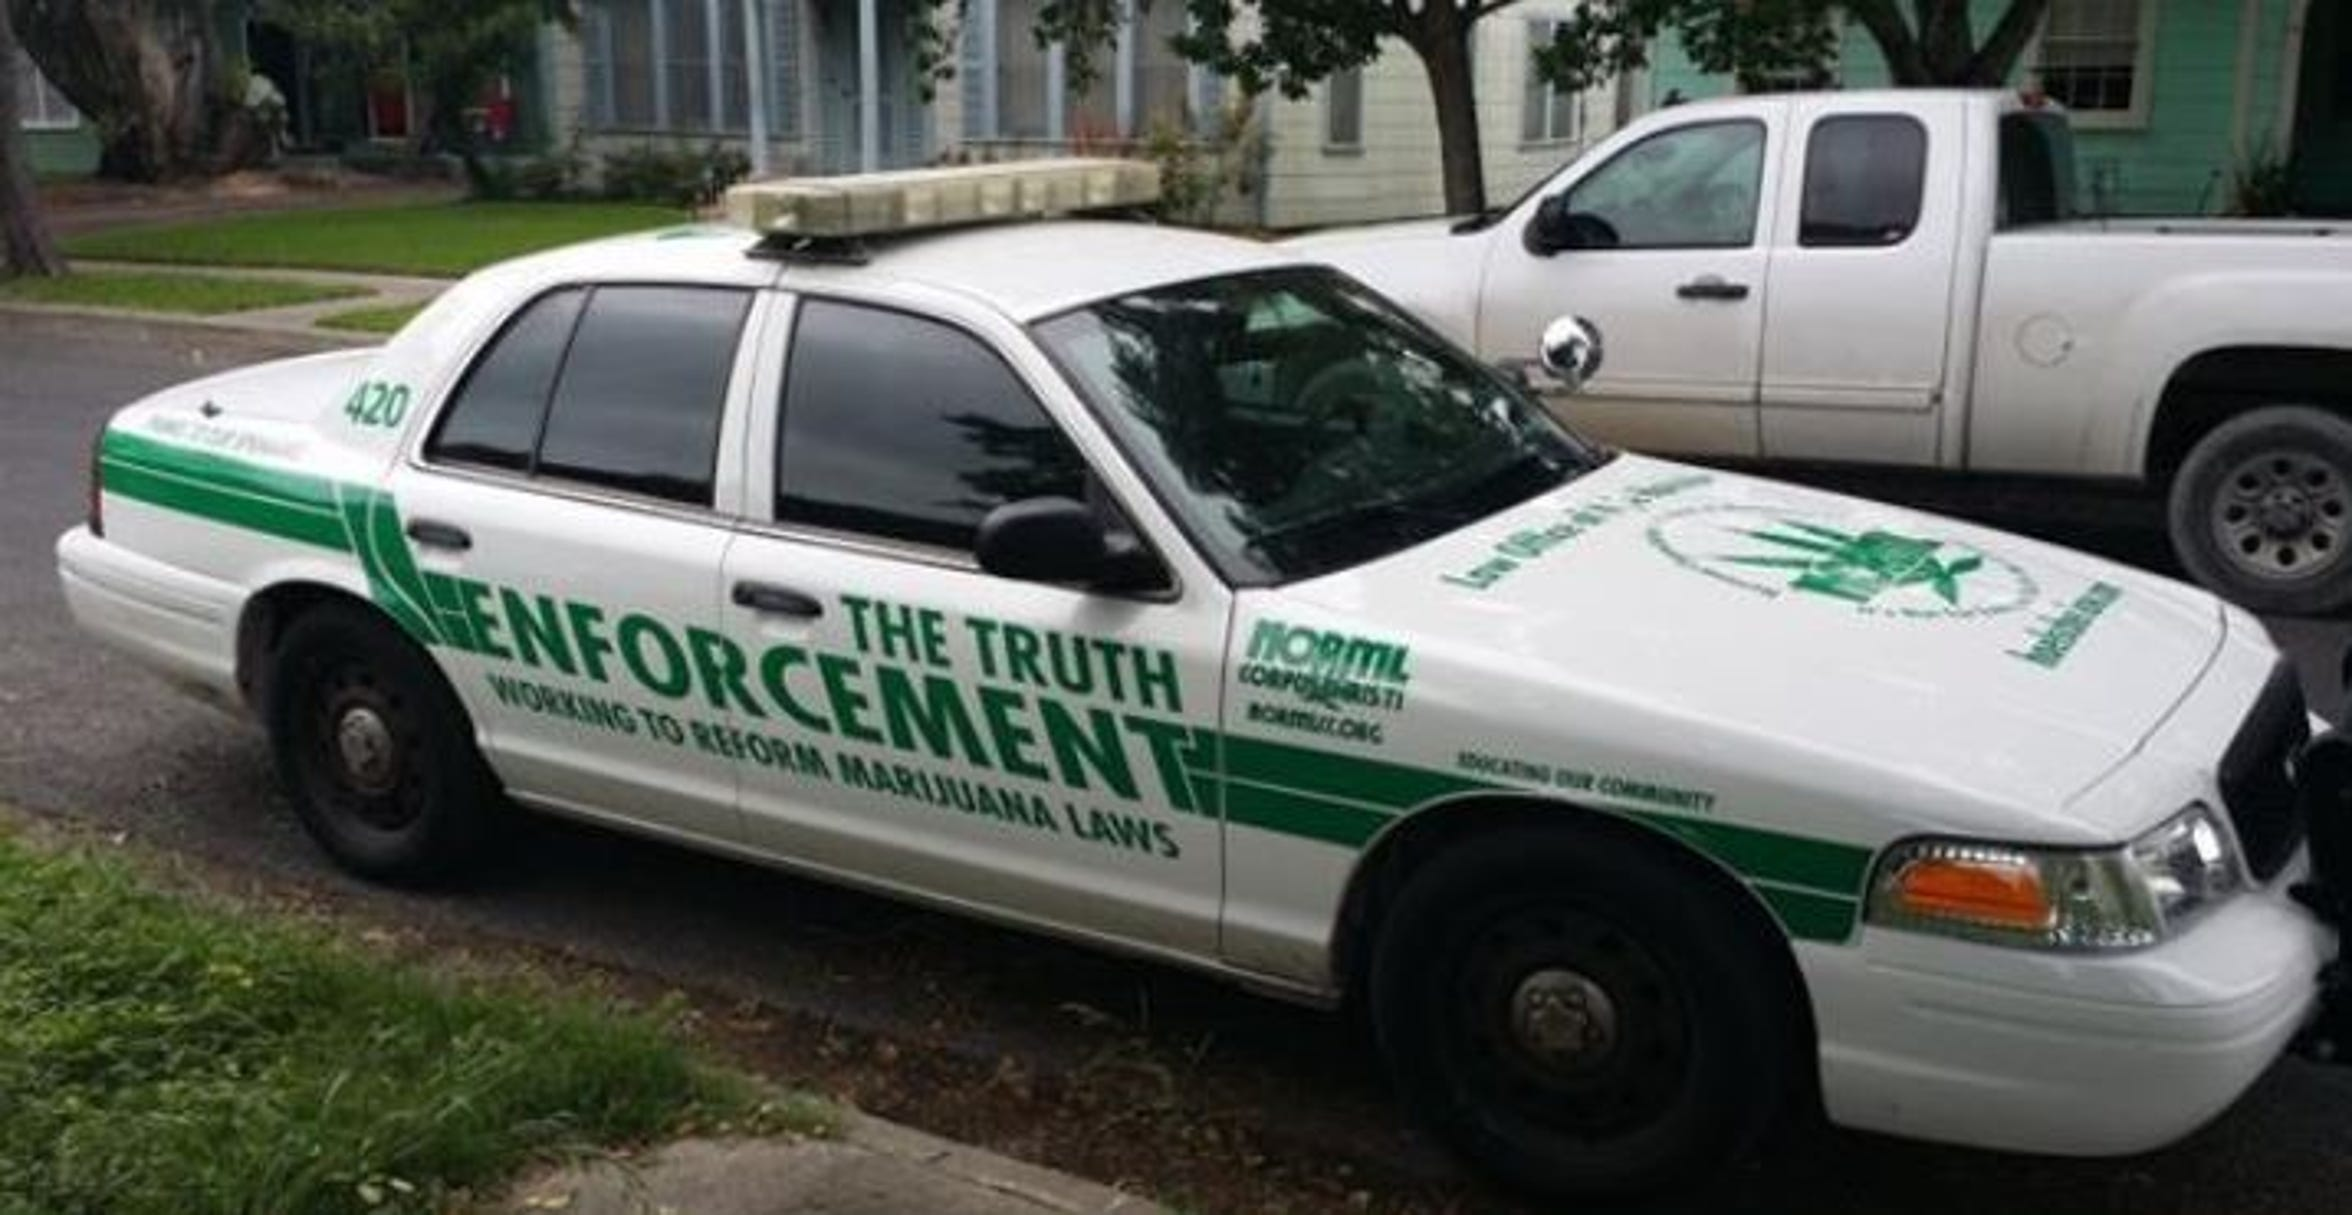 The police car-like vehicle used by the Corpus Christi chapter of the National Organization for the Reform of Marijuana Laws.